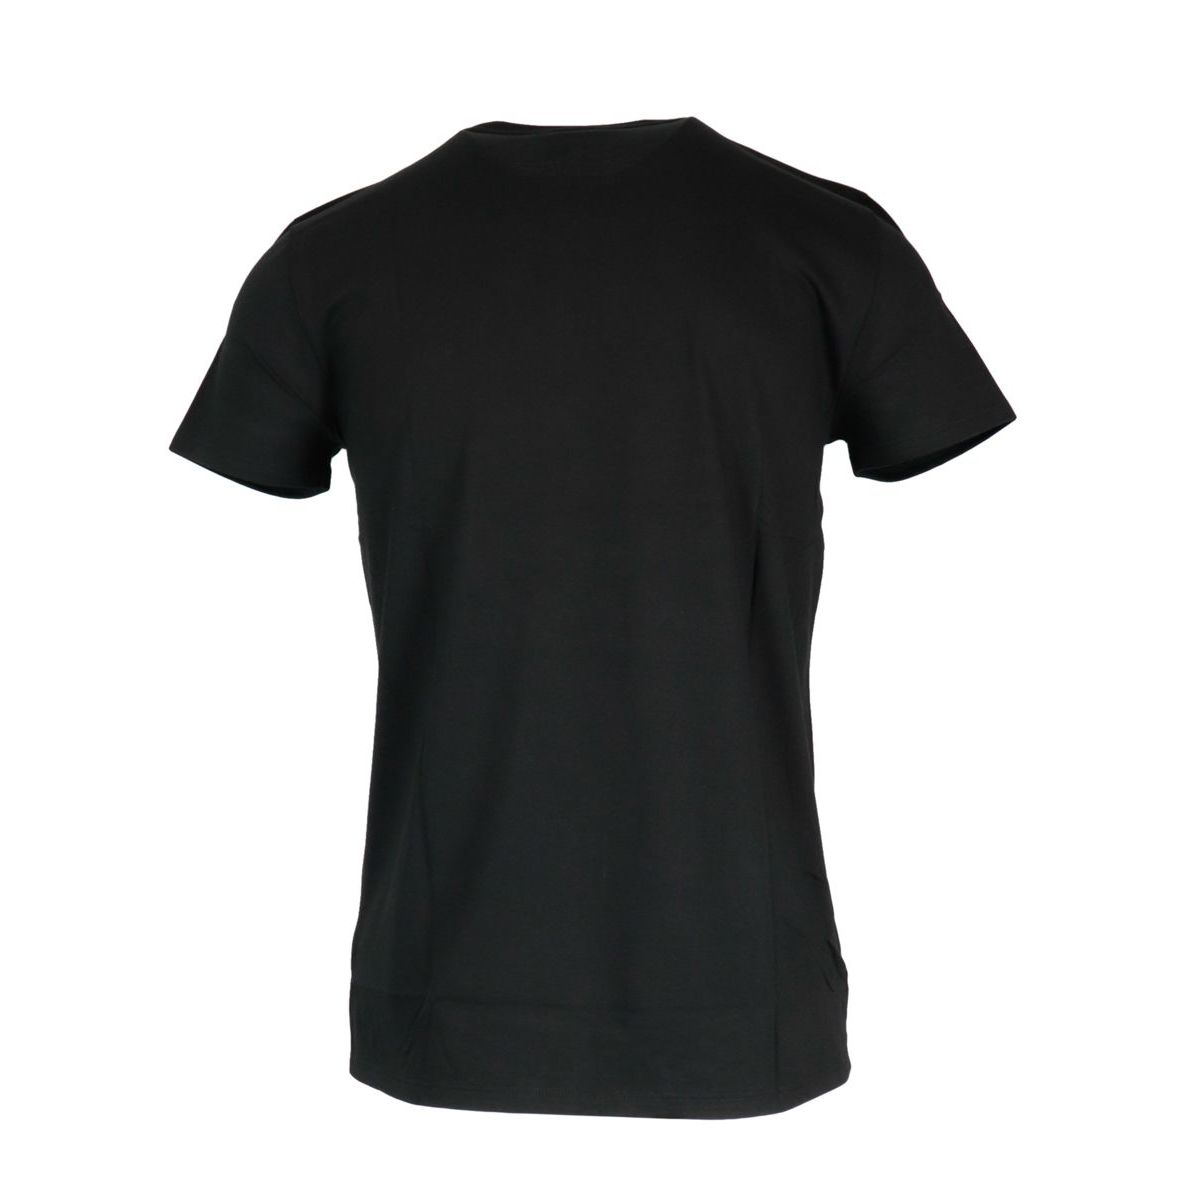 Regular cotton T-shirt with small logo applied Black Lacoste